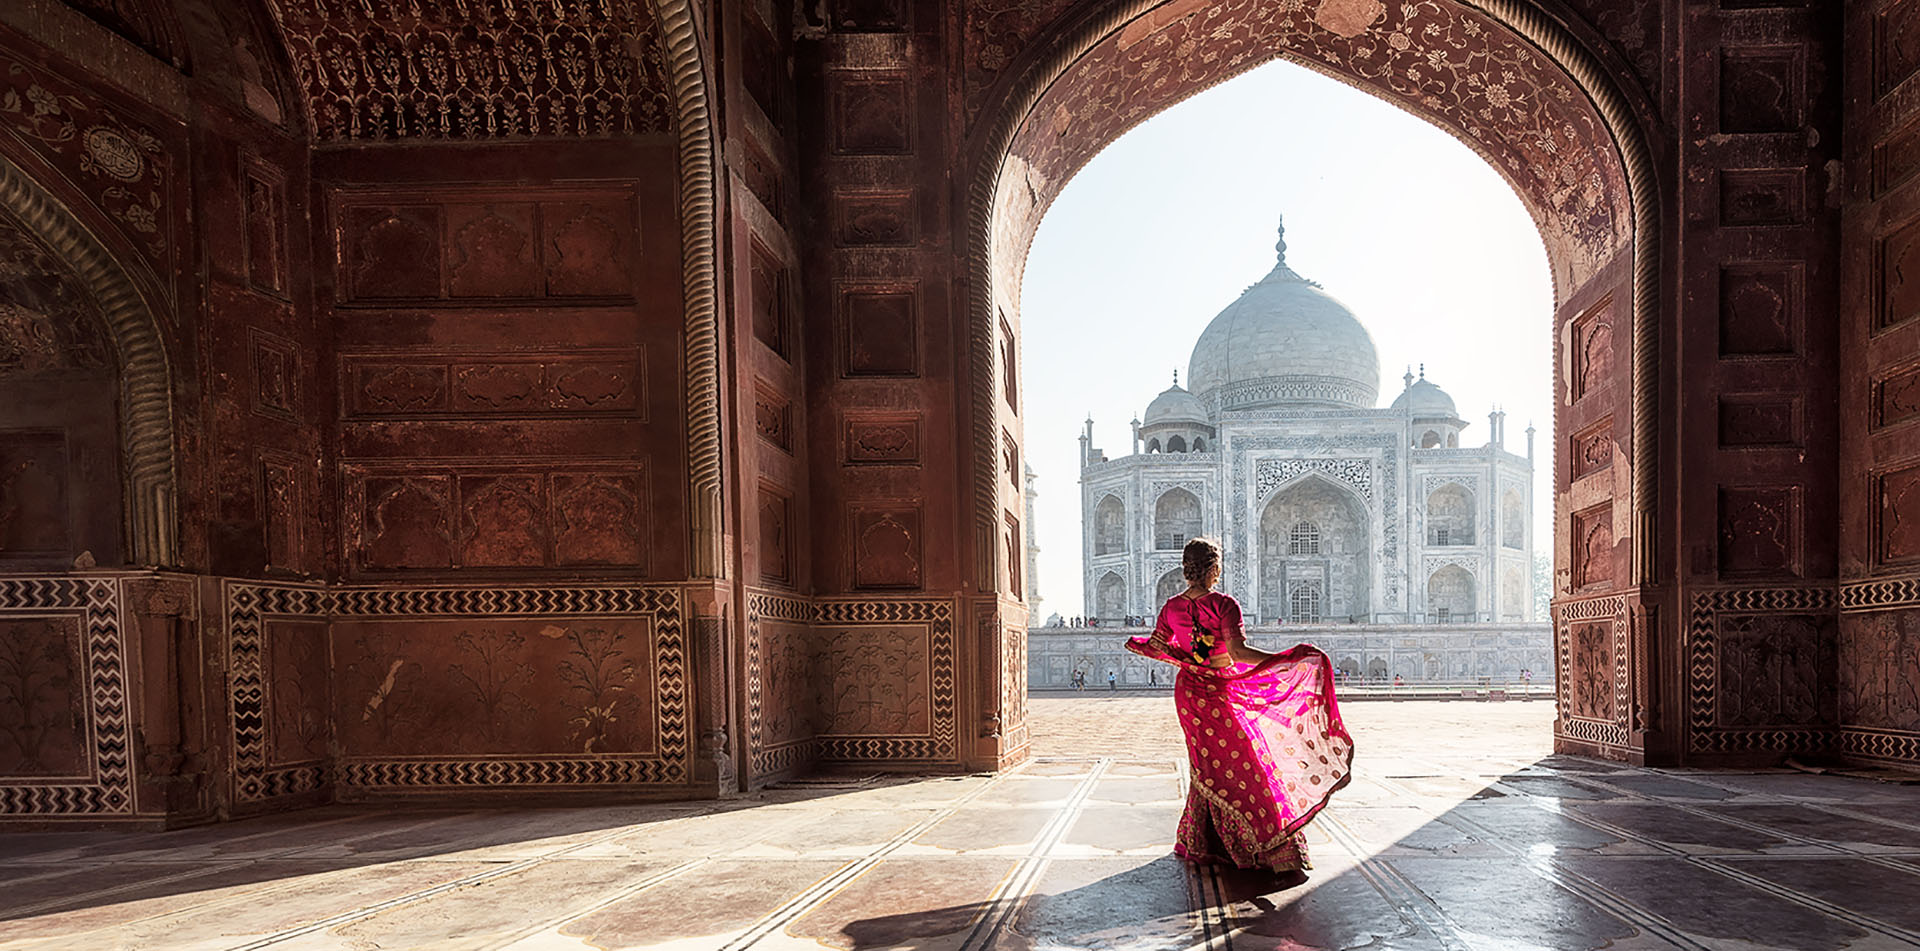 Asia India woman in sari dancing under an archway at Taj Mahal UNESCO world heritage site - luxury vacation destinations